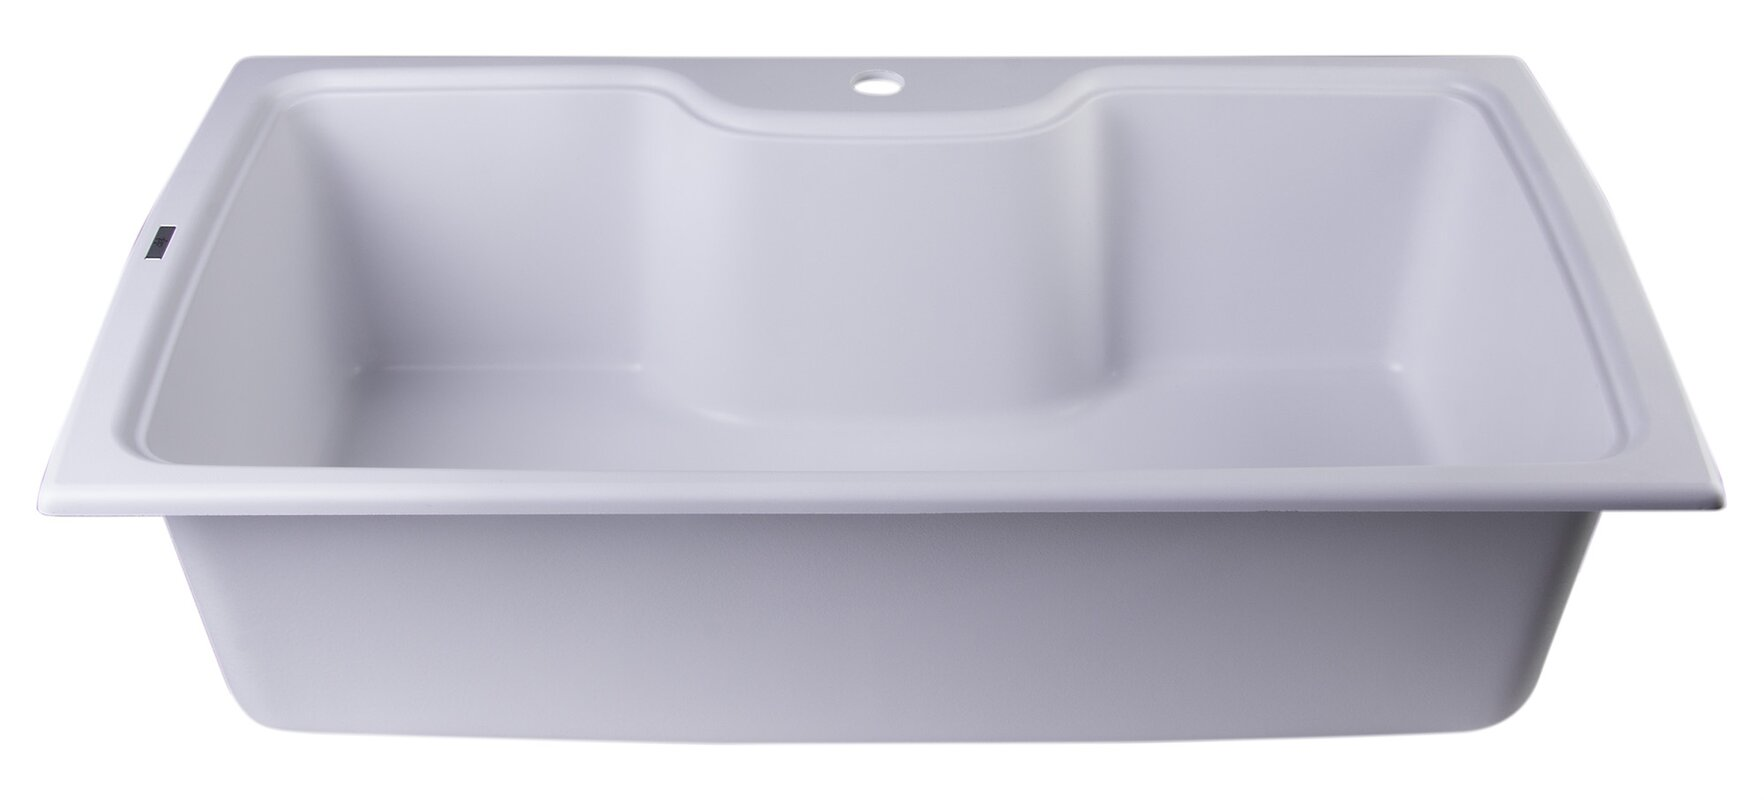 kitchen sink brand alfi brand 34 63 quot x 19 69 quot drop in single bowl kitchen 2593